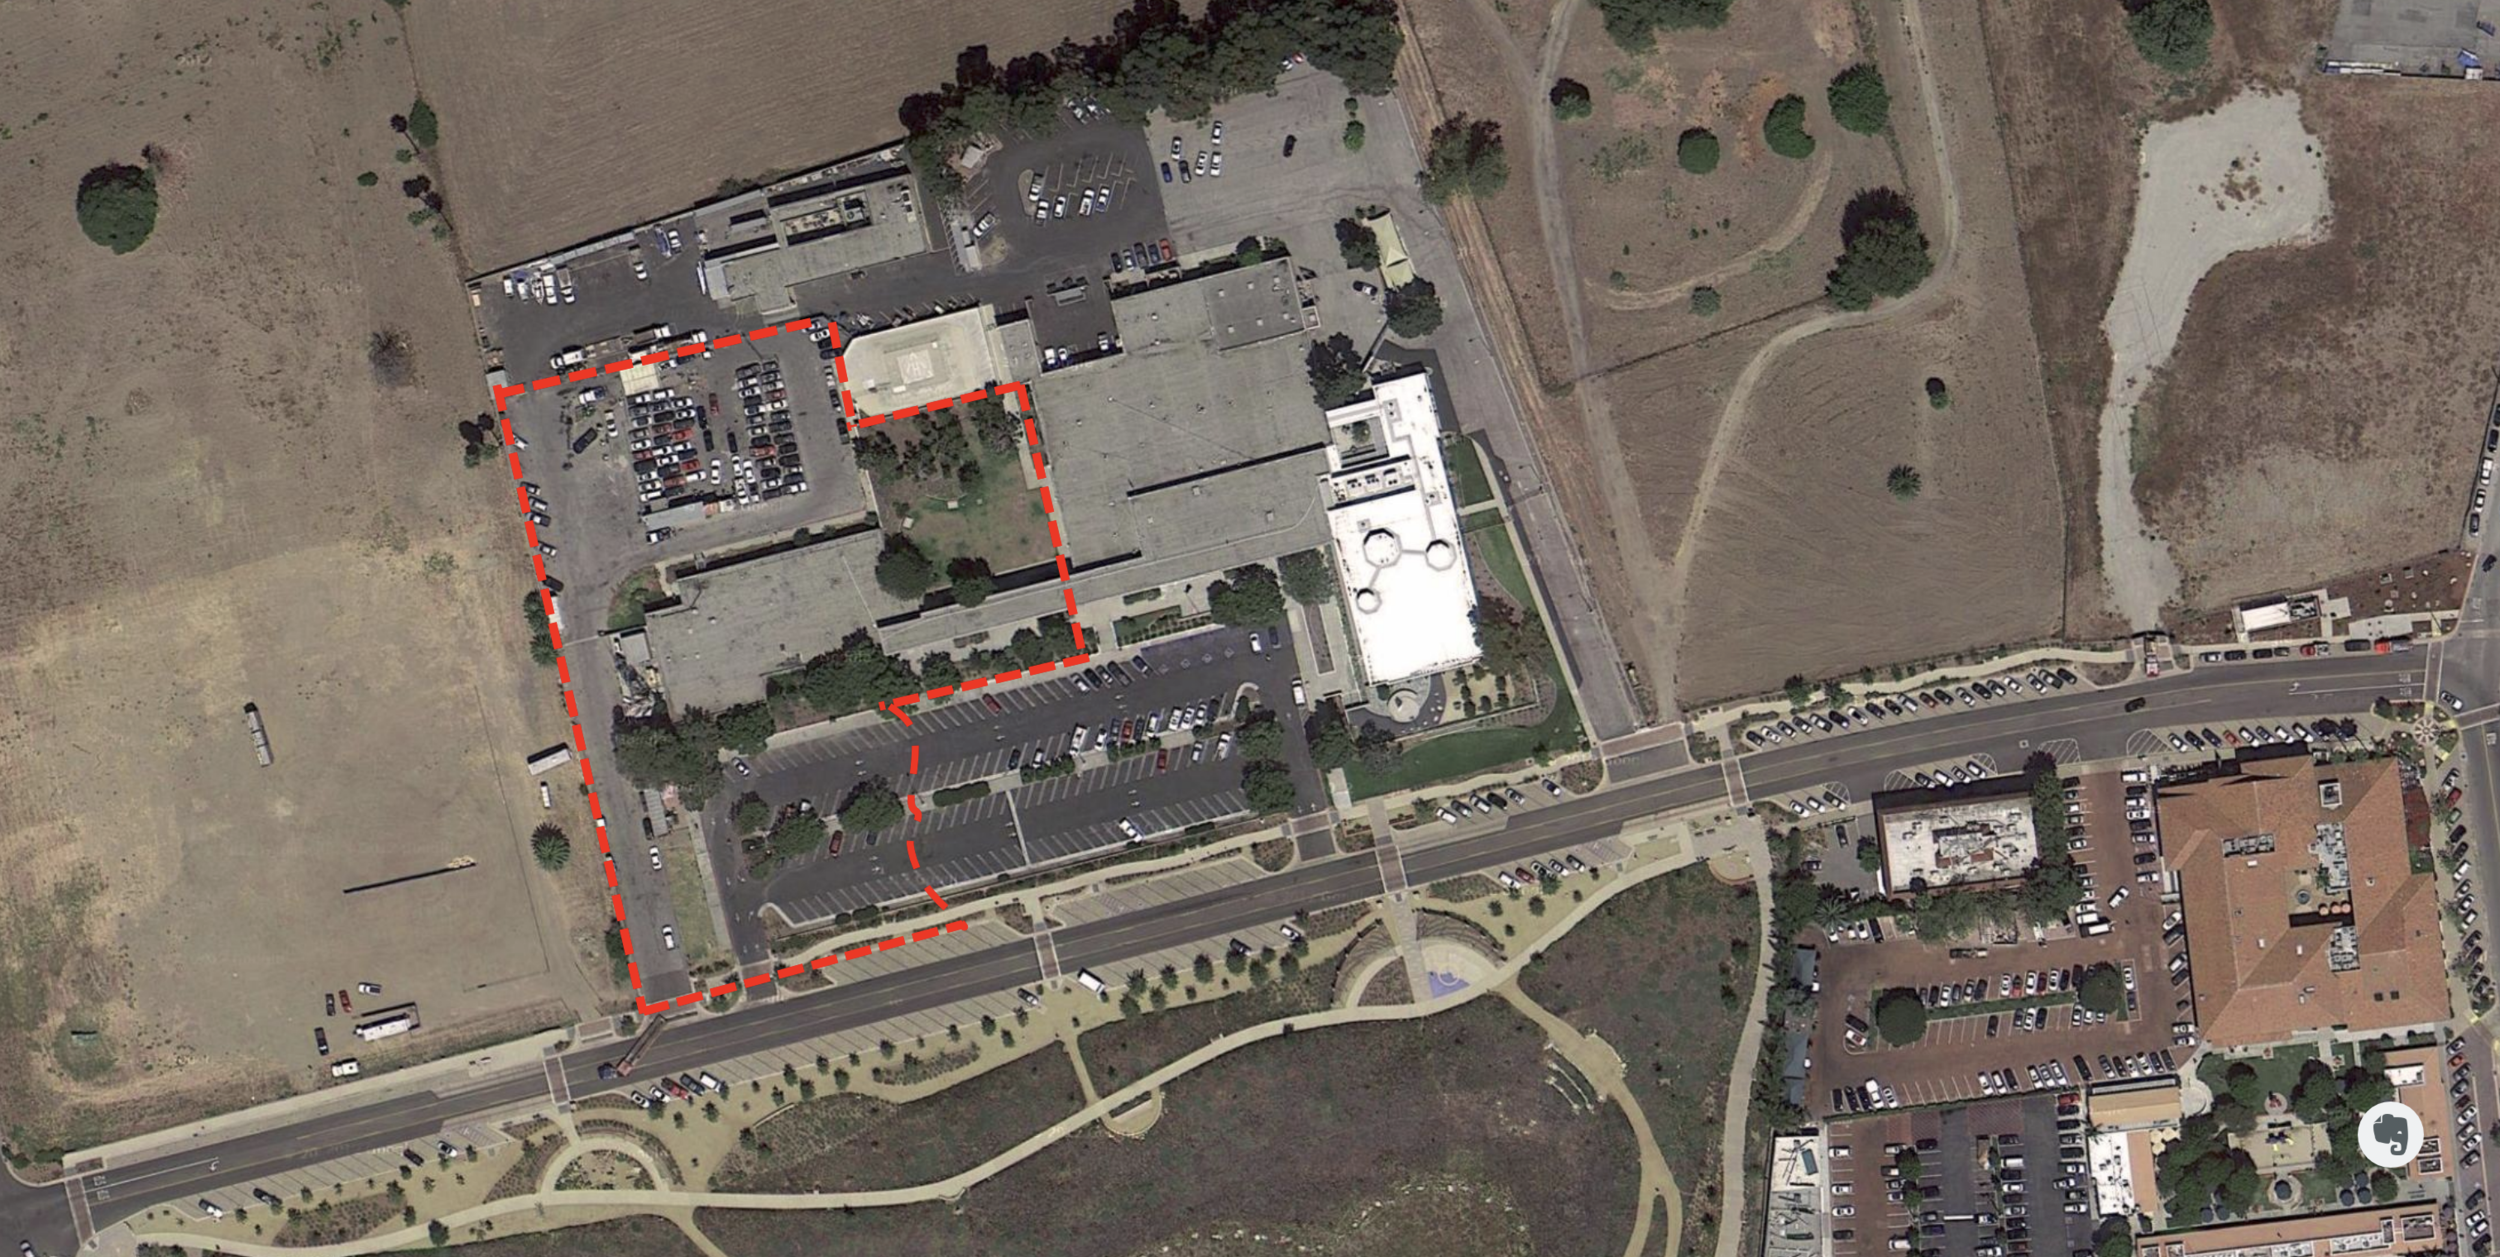 The new campus will be nestled in a three-acre lot across from Legacy Park, within the Civic Center Complex.